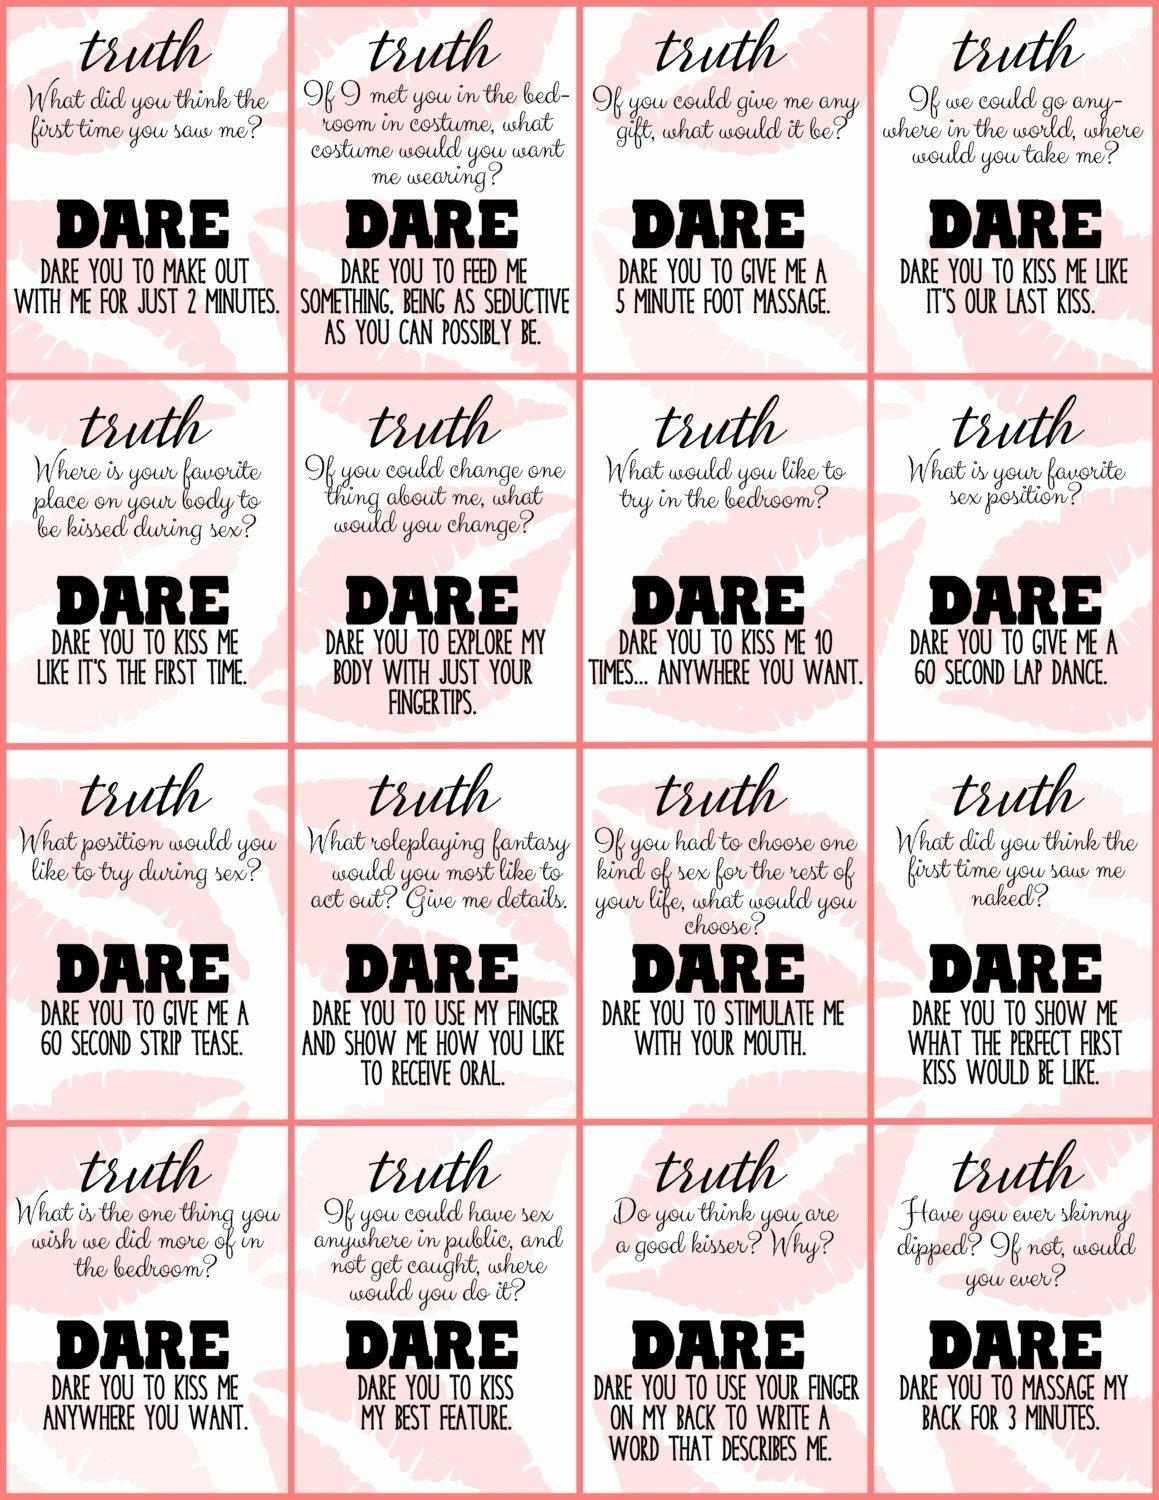 10 Fashionable Extreme Truth Or Dare Ideas 100 dirty questions to ask a girl truths relationships and 2021